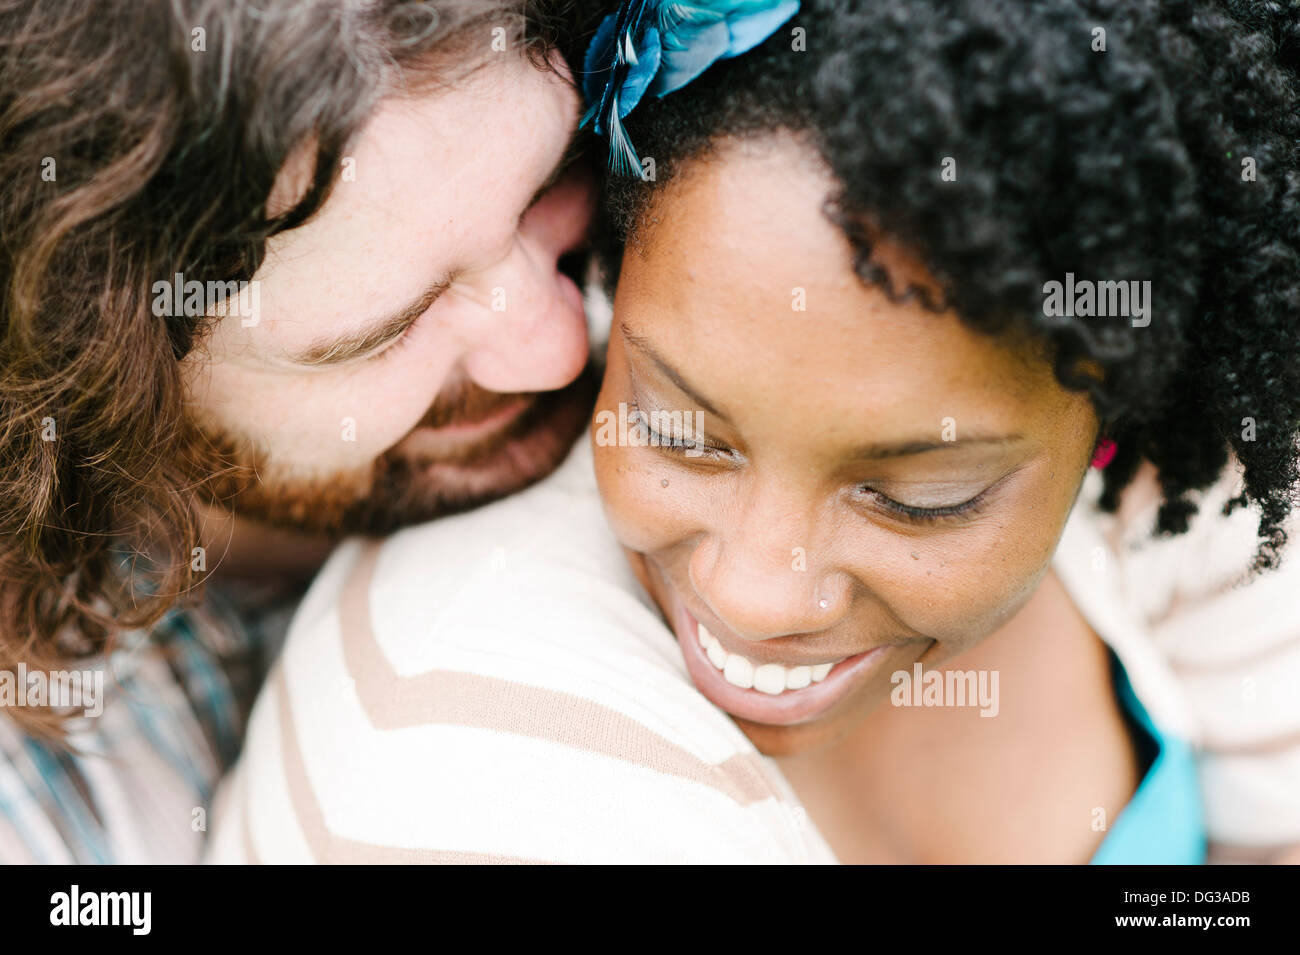 Lächelnde Interracial Paare, Close Up, High Angle View Stockbild